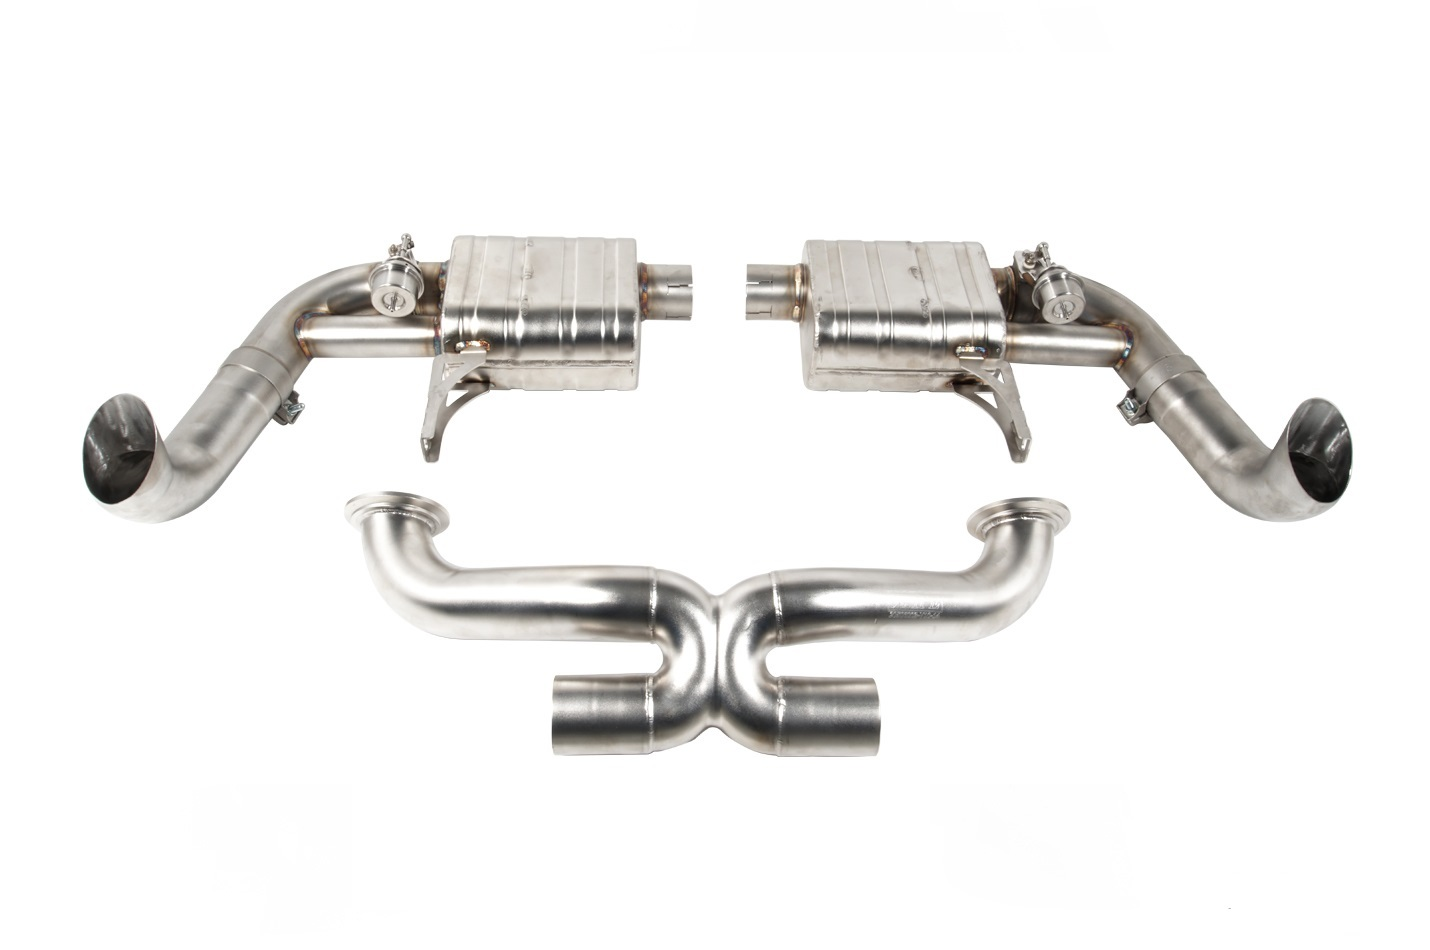 IPE exhaust system for Audi R8 RWD Coupe/Spyder 5.2FSI V10